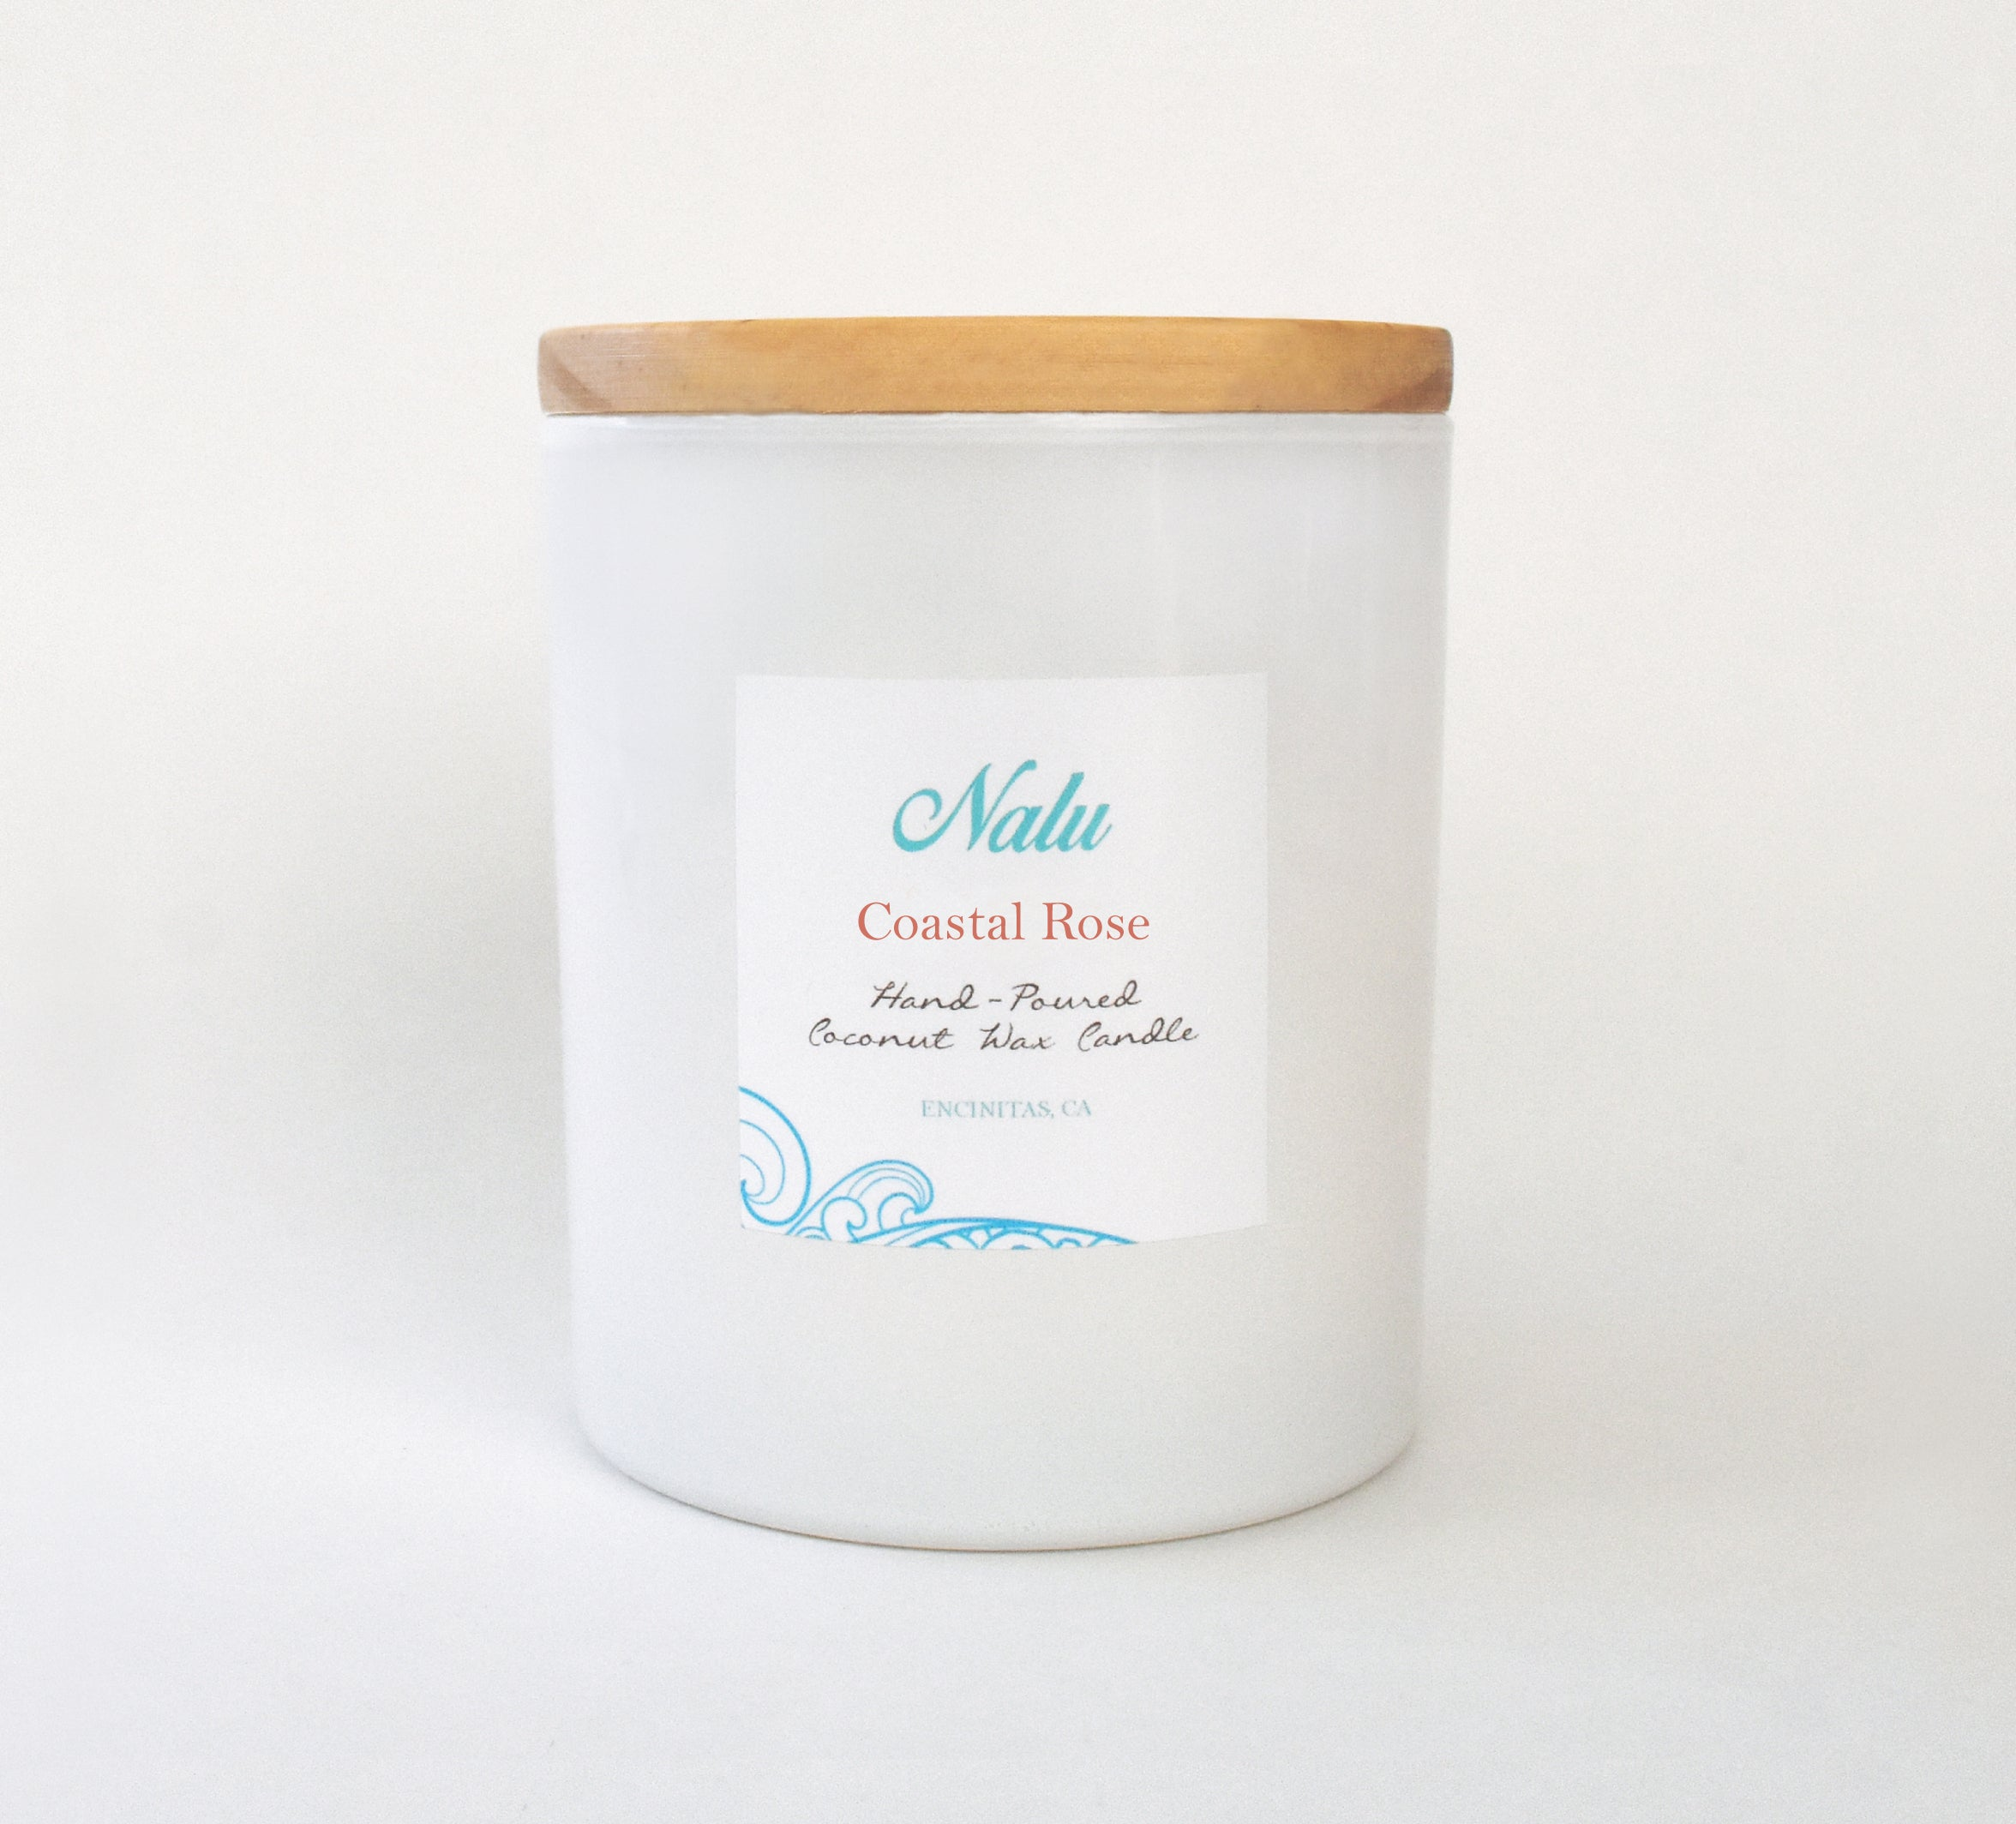 Coastal Rose 10 oz. Candle